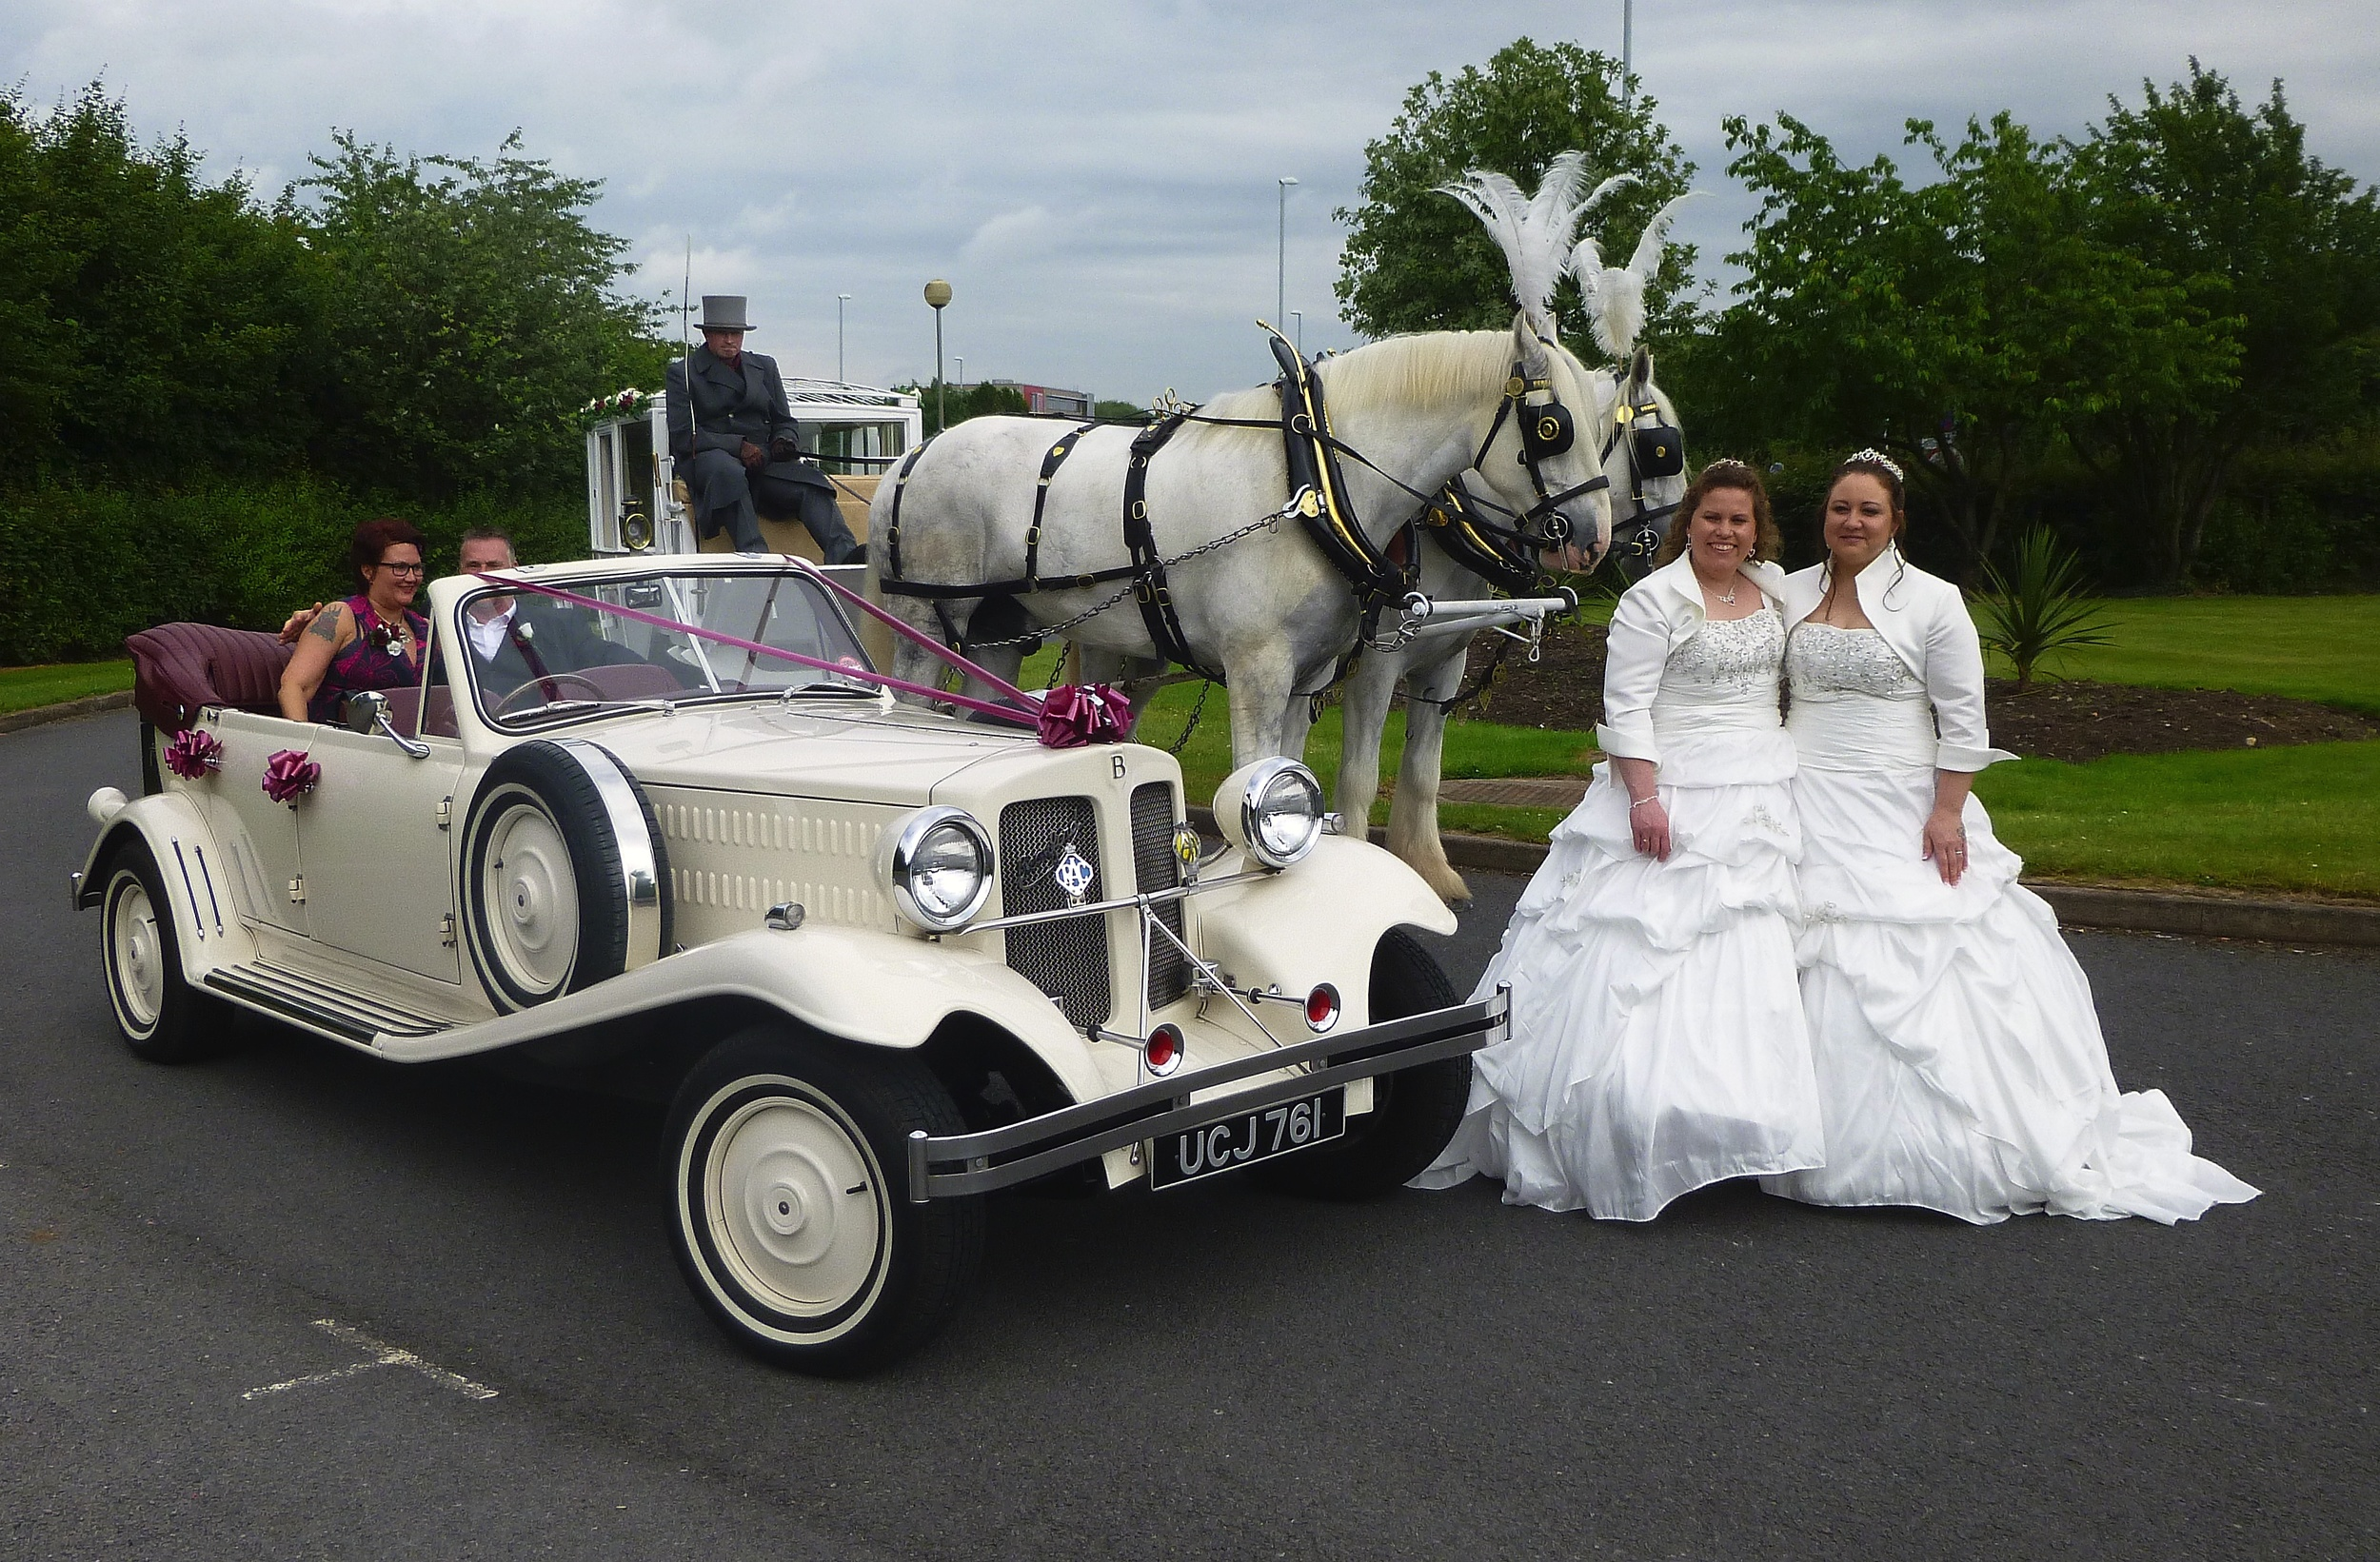 The splendidly turned out horses and carriage made for an amazing spectacle. I didn't catch the business name but from Mansfield. I think our car fitted in quite well! Melissa & Emma certainly enjoyed a wonderful day.